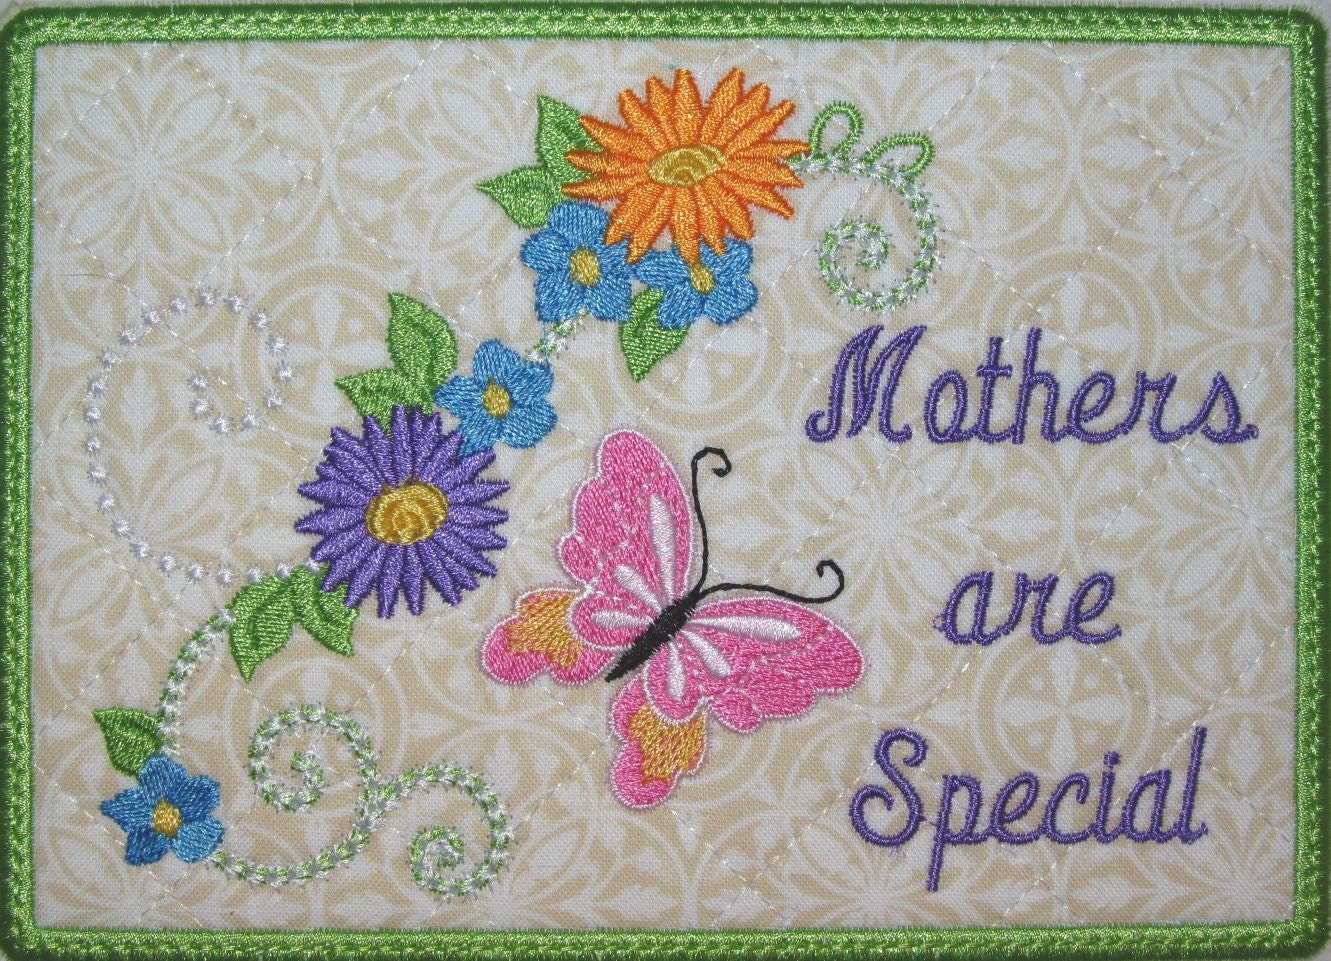 ith machine embroidery designs